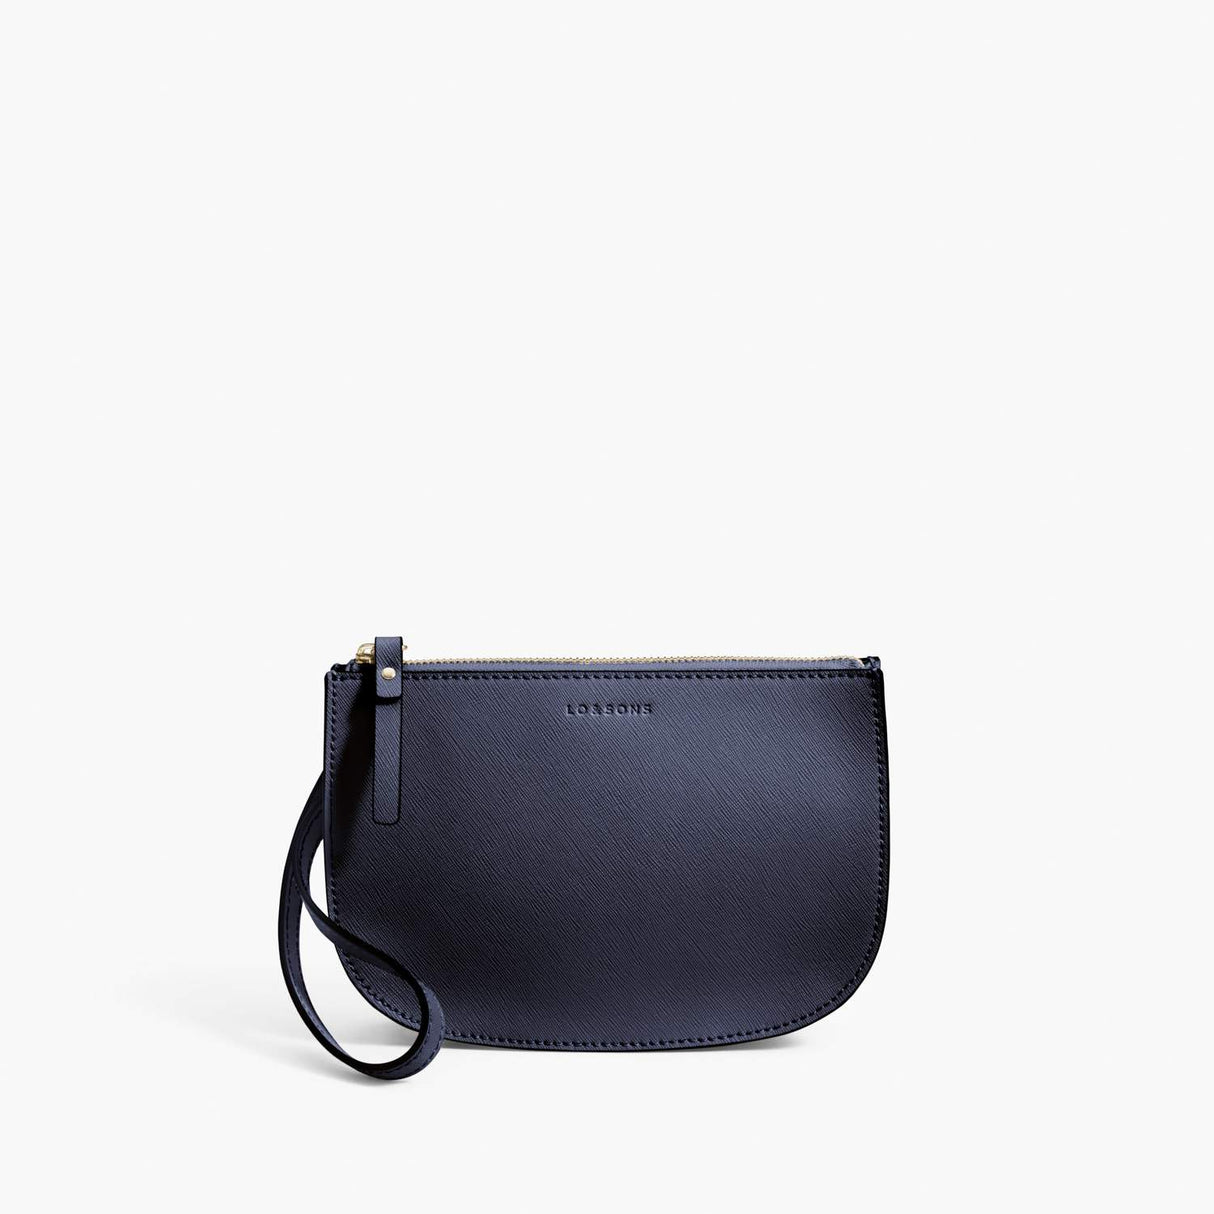 Front Wristlet - Waverley 2 - Saffiano Leather - Deep Navy / Gold / Camel - Crossbody Bag - Lo & Sons